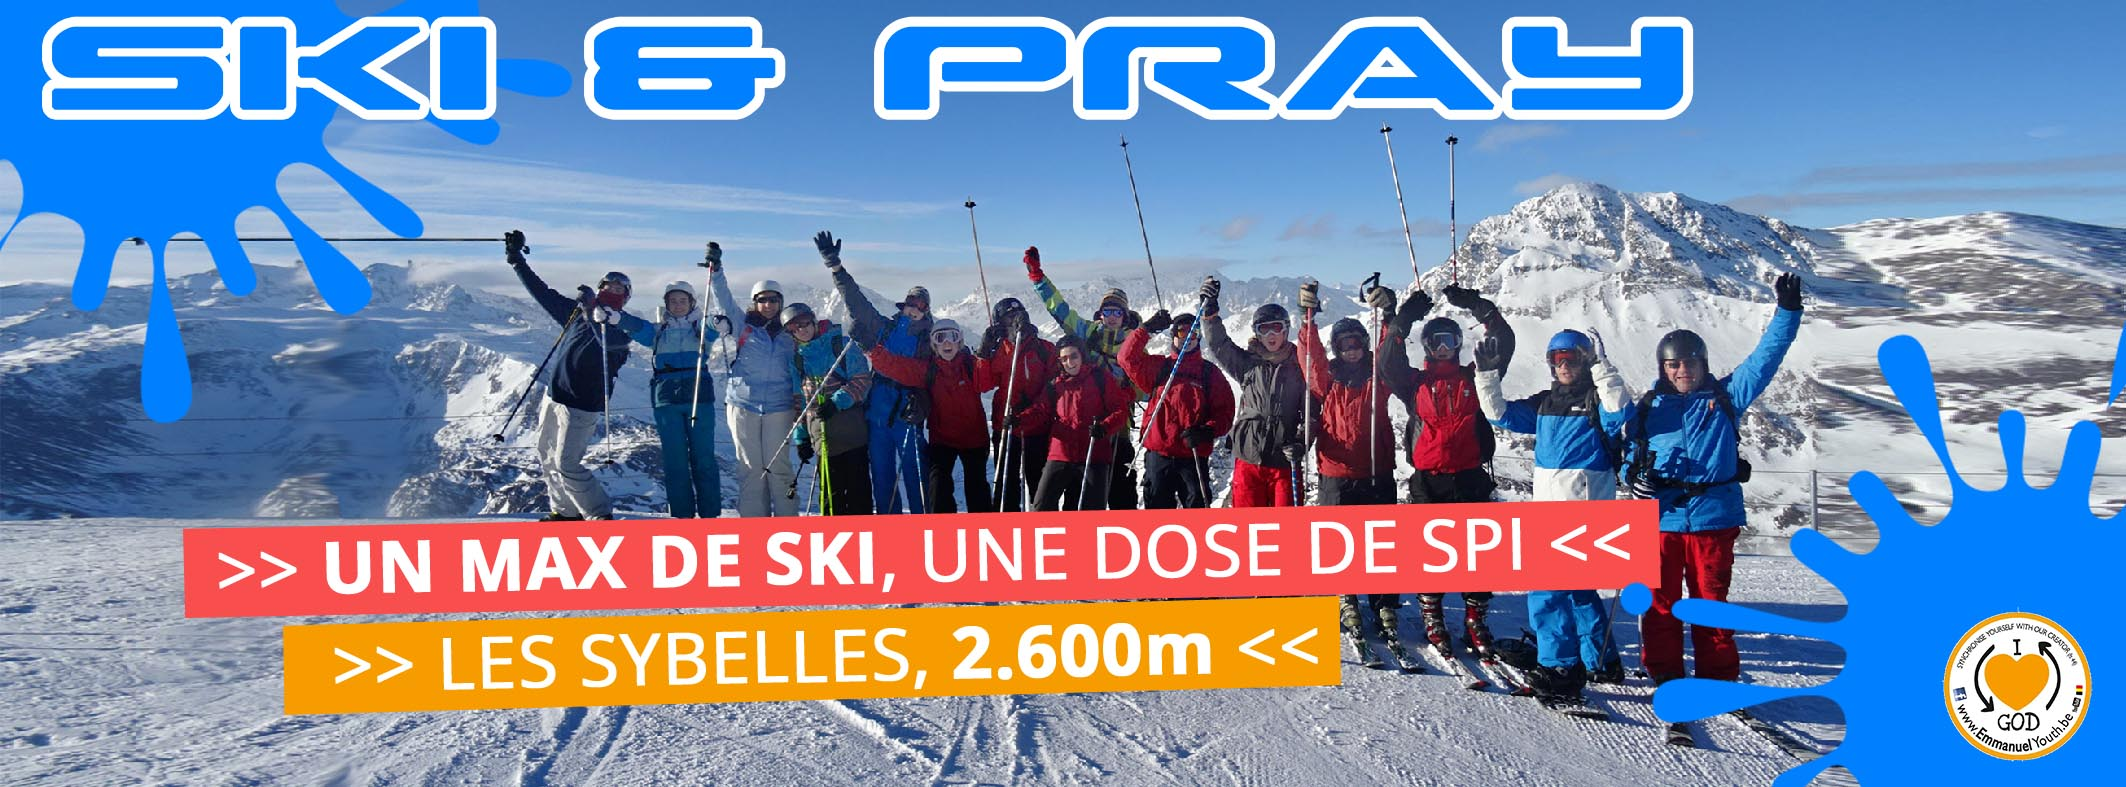 Banner-SkiAndPray-groupe2016-270x100-v3 copie